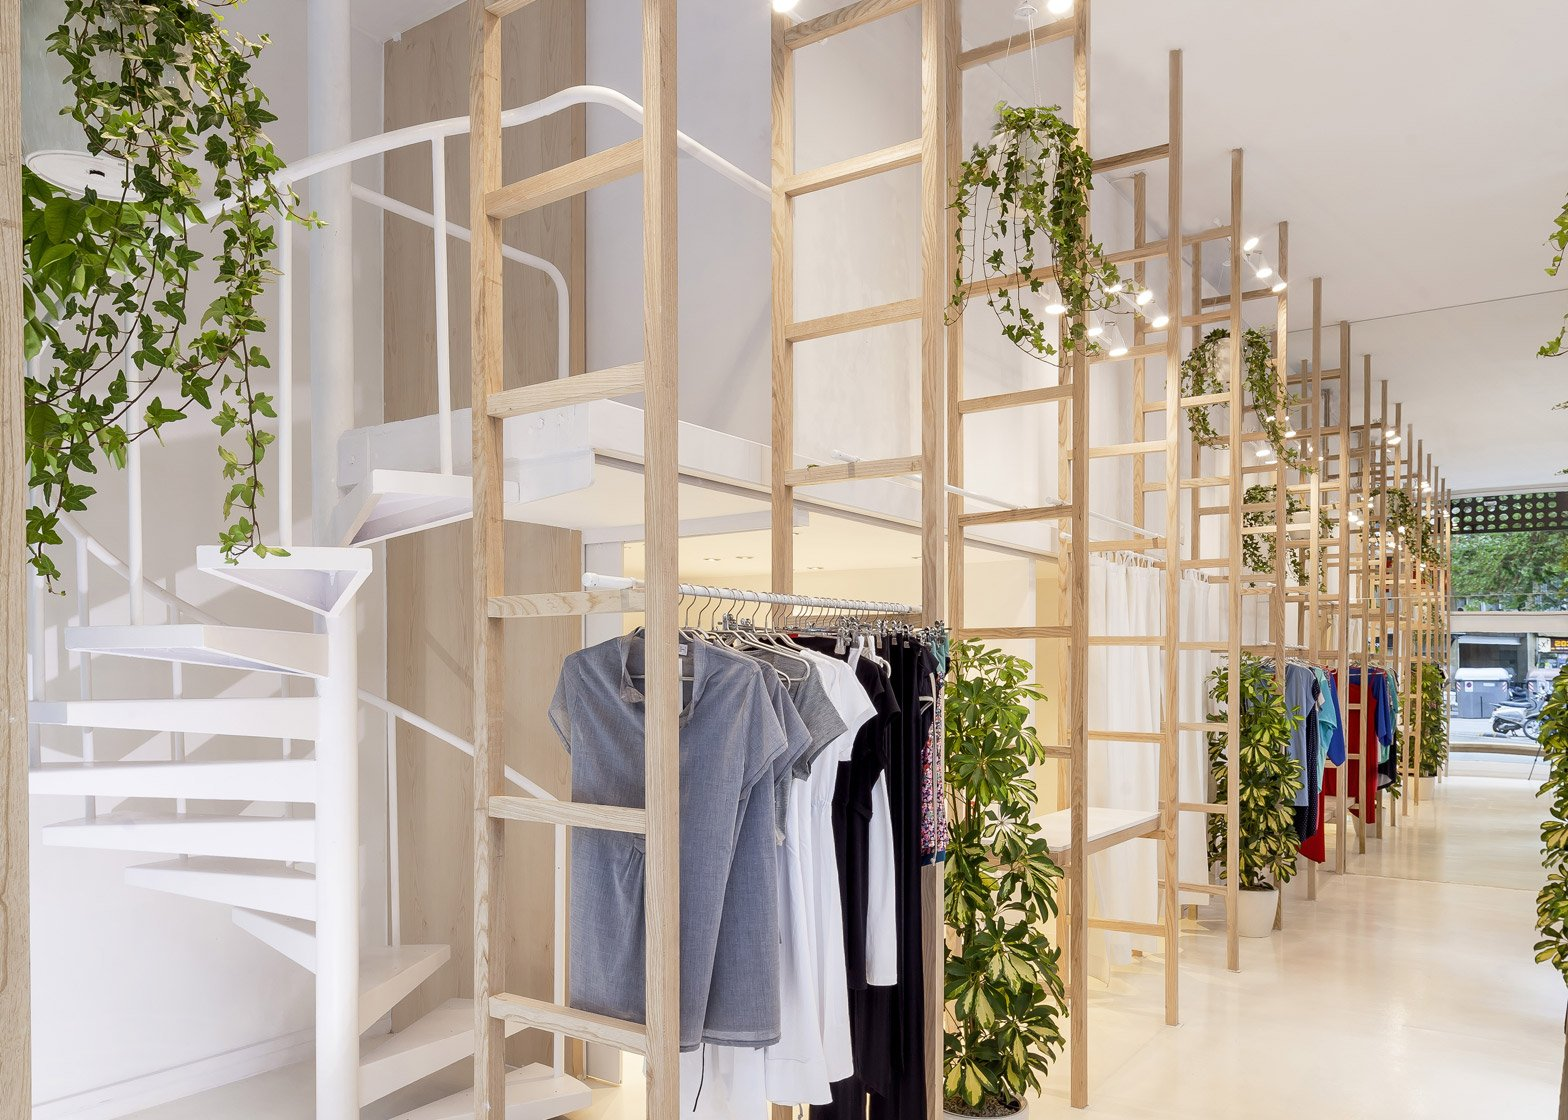 Clothes hang from wooden ladders in Mit Mat Mama store